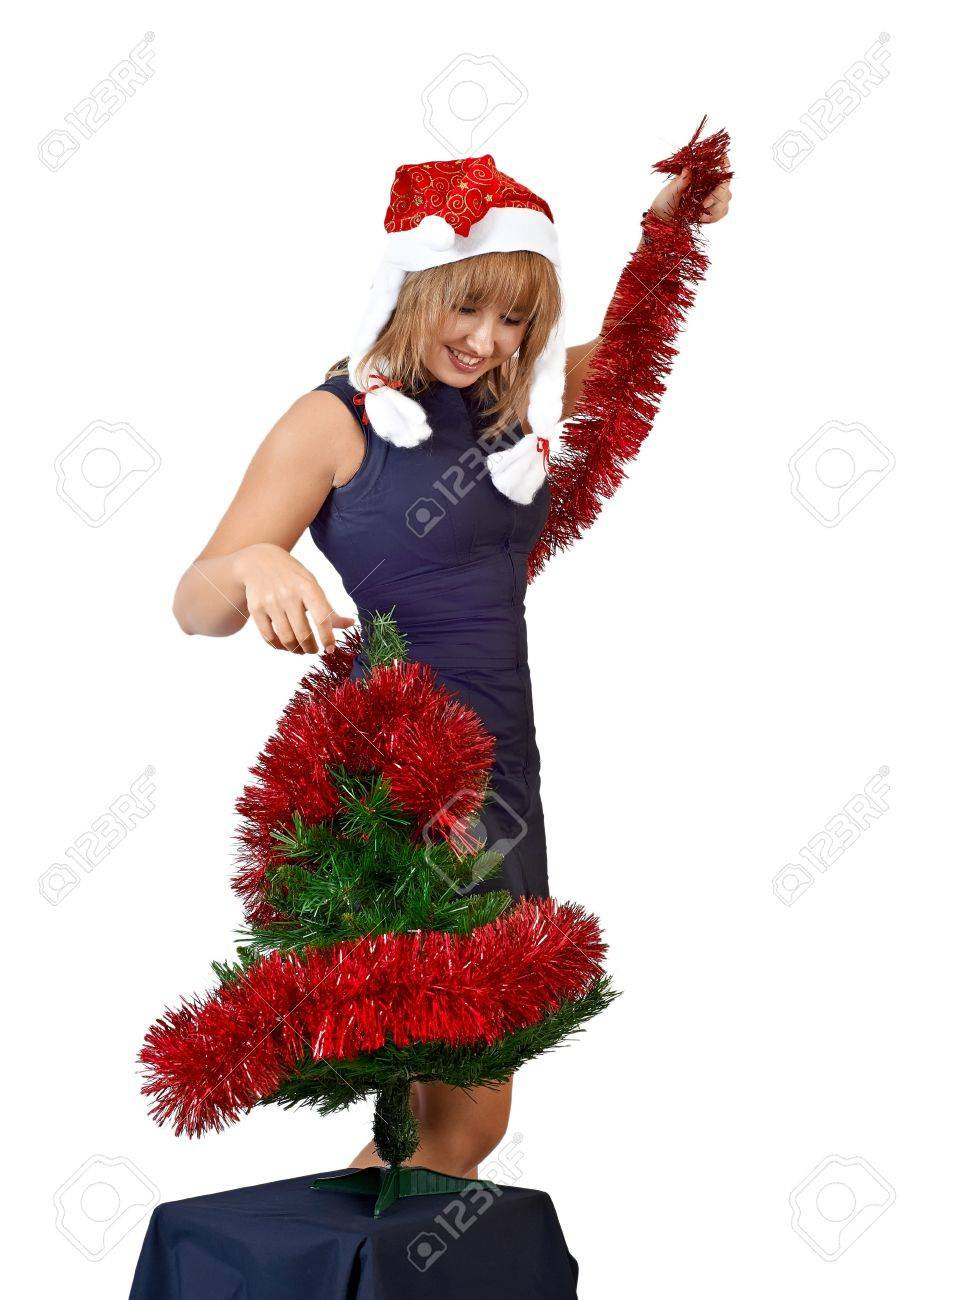 Christmas tree dress up images - Stock Photo Beautiful Girl In The Hat Of Santa Claus Dress Up The Christmas Tree